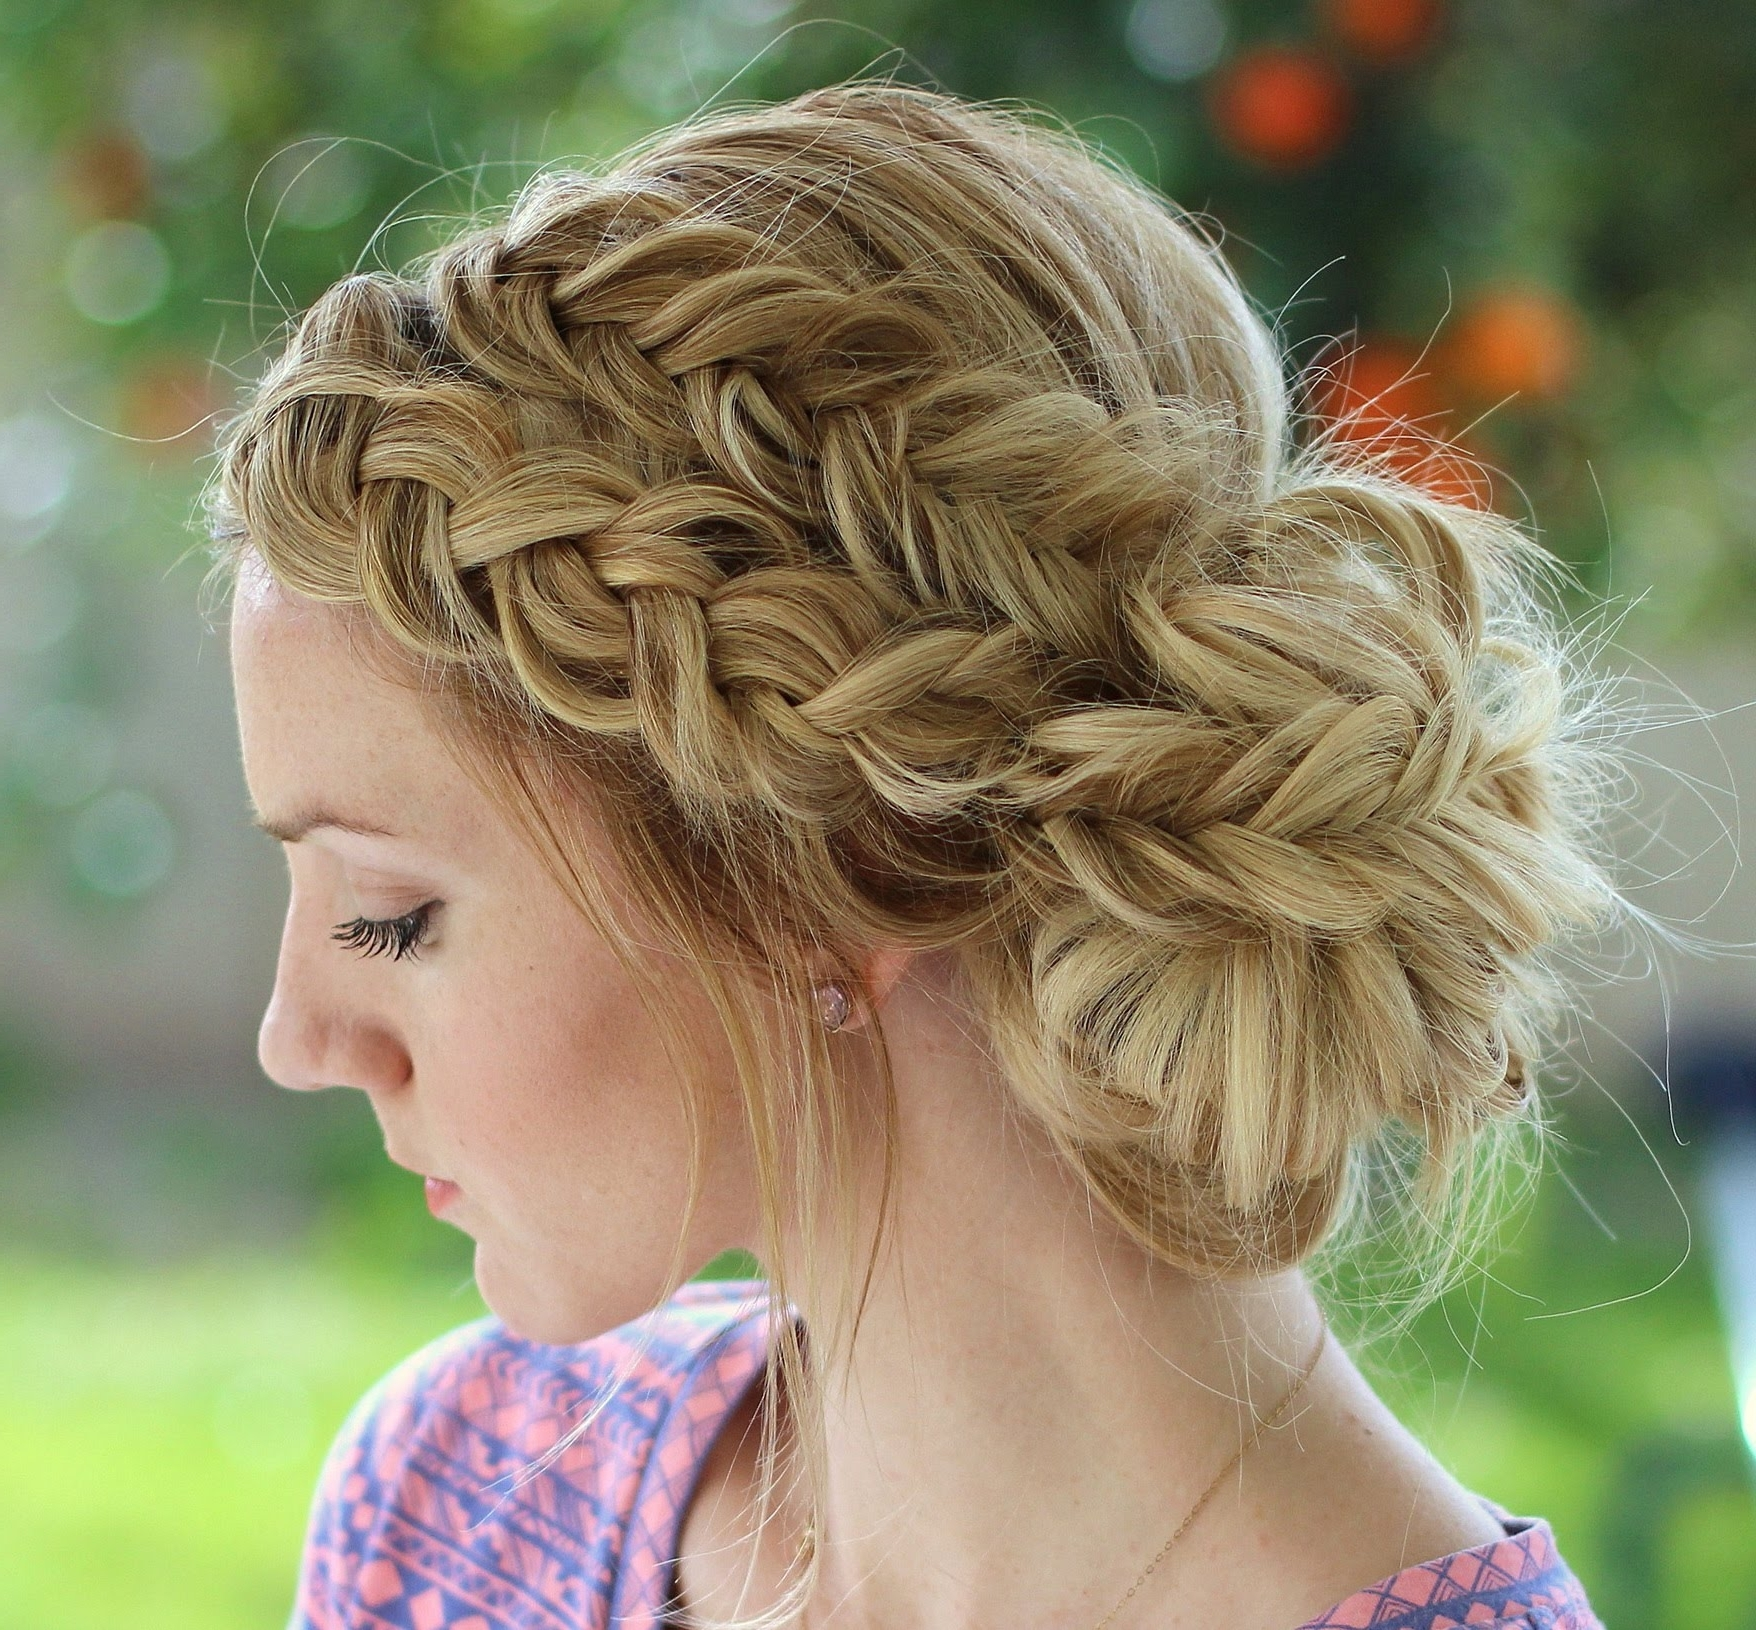 Preferred Messy Ponytail Hairstyles With Side Dutch Braid Throughout How To: Dutch Braid And Dutch Fishtail Braid Messy Bun – Youtube (View 18 of 20)